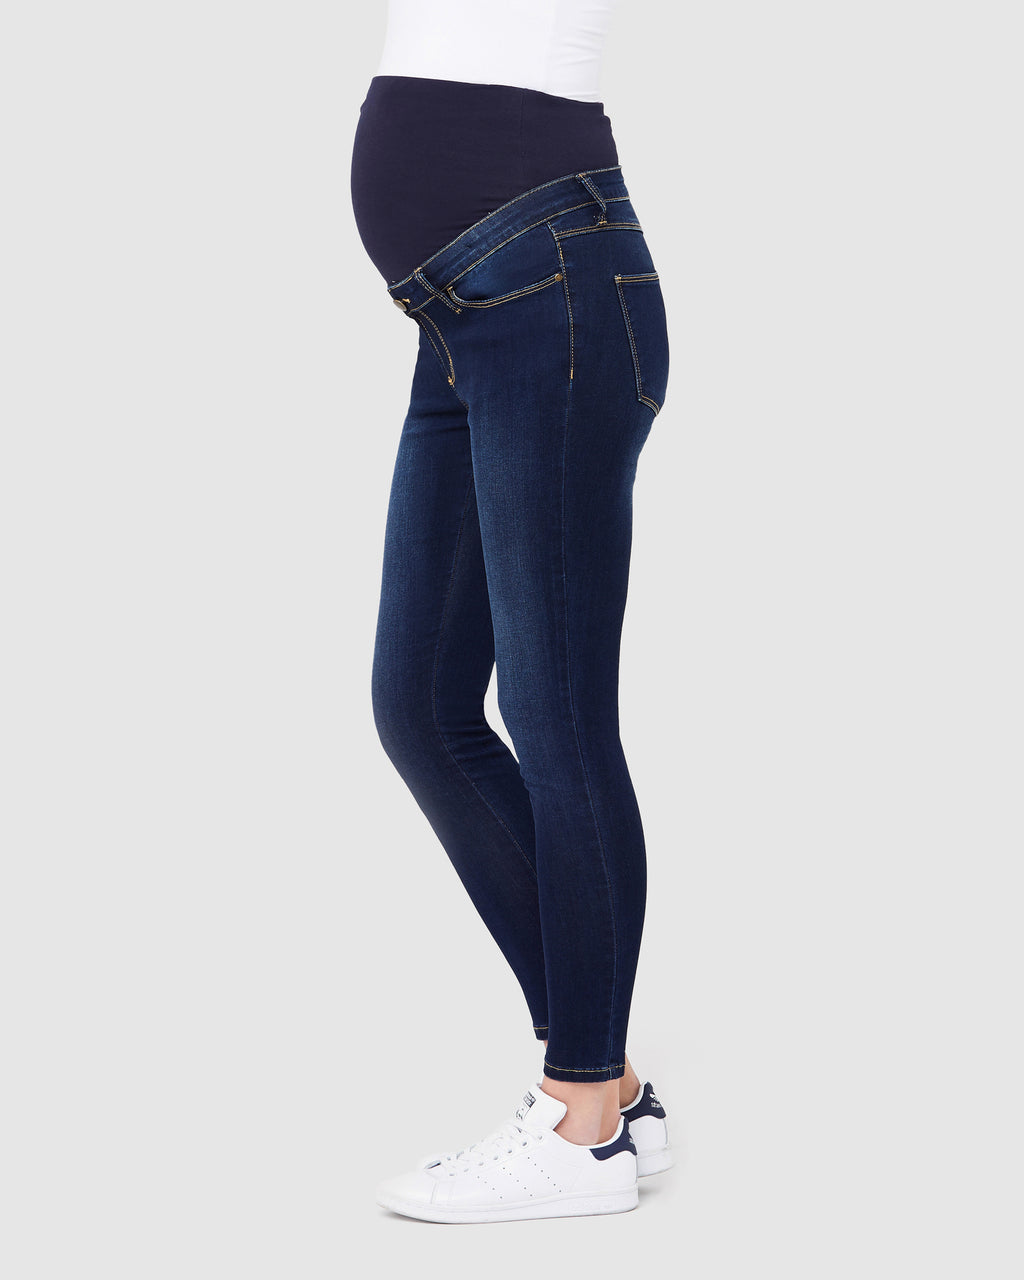 Rebel Ankle Grazer - Nursing & Maternity Clothes